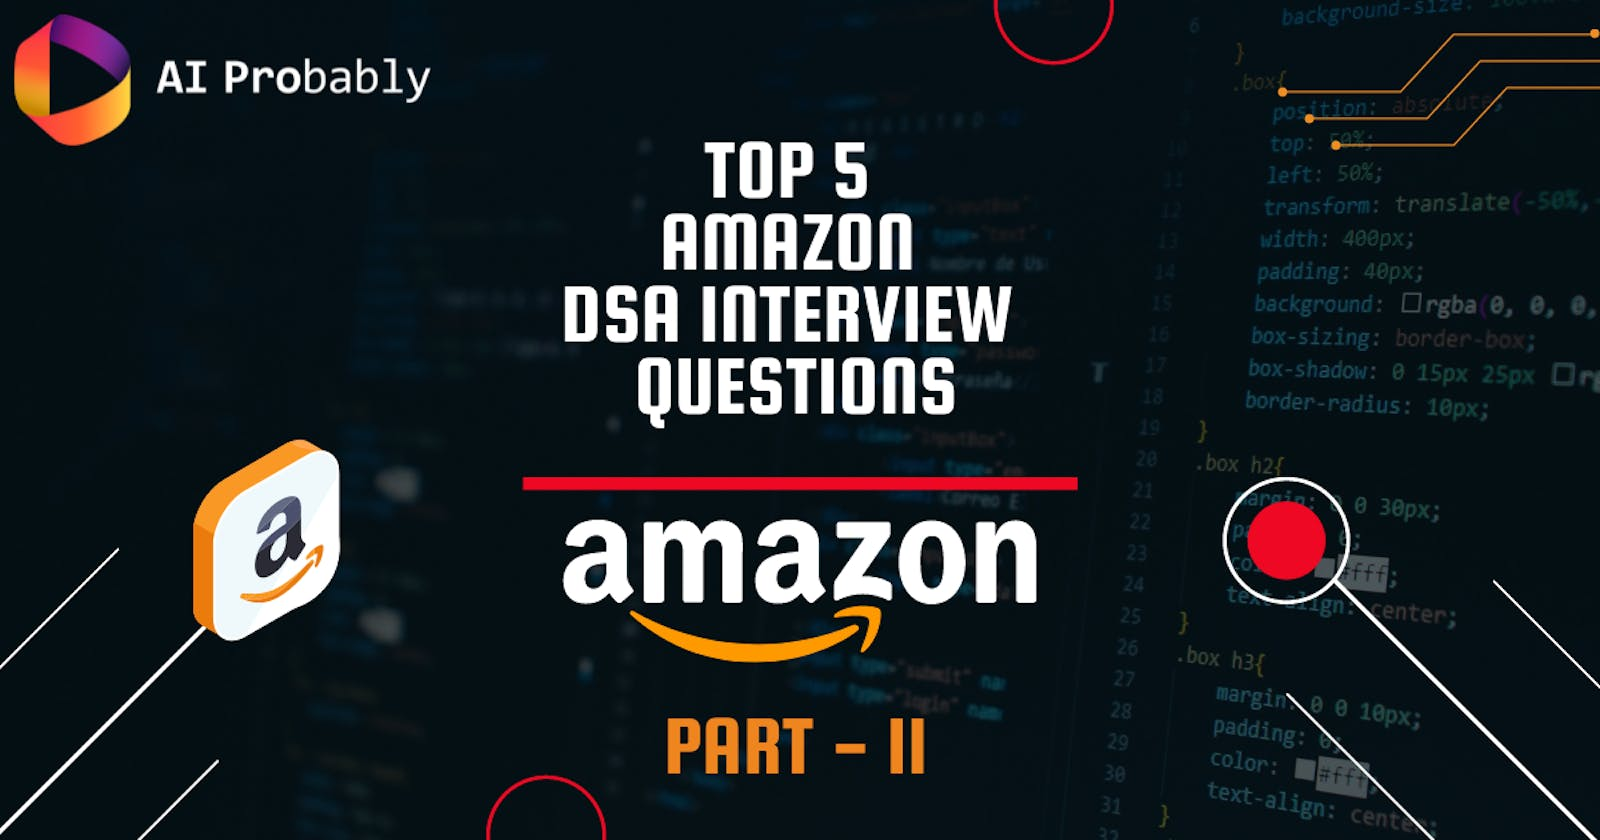 Top 5 DSA Interview Questions asked at Amazon - Part II